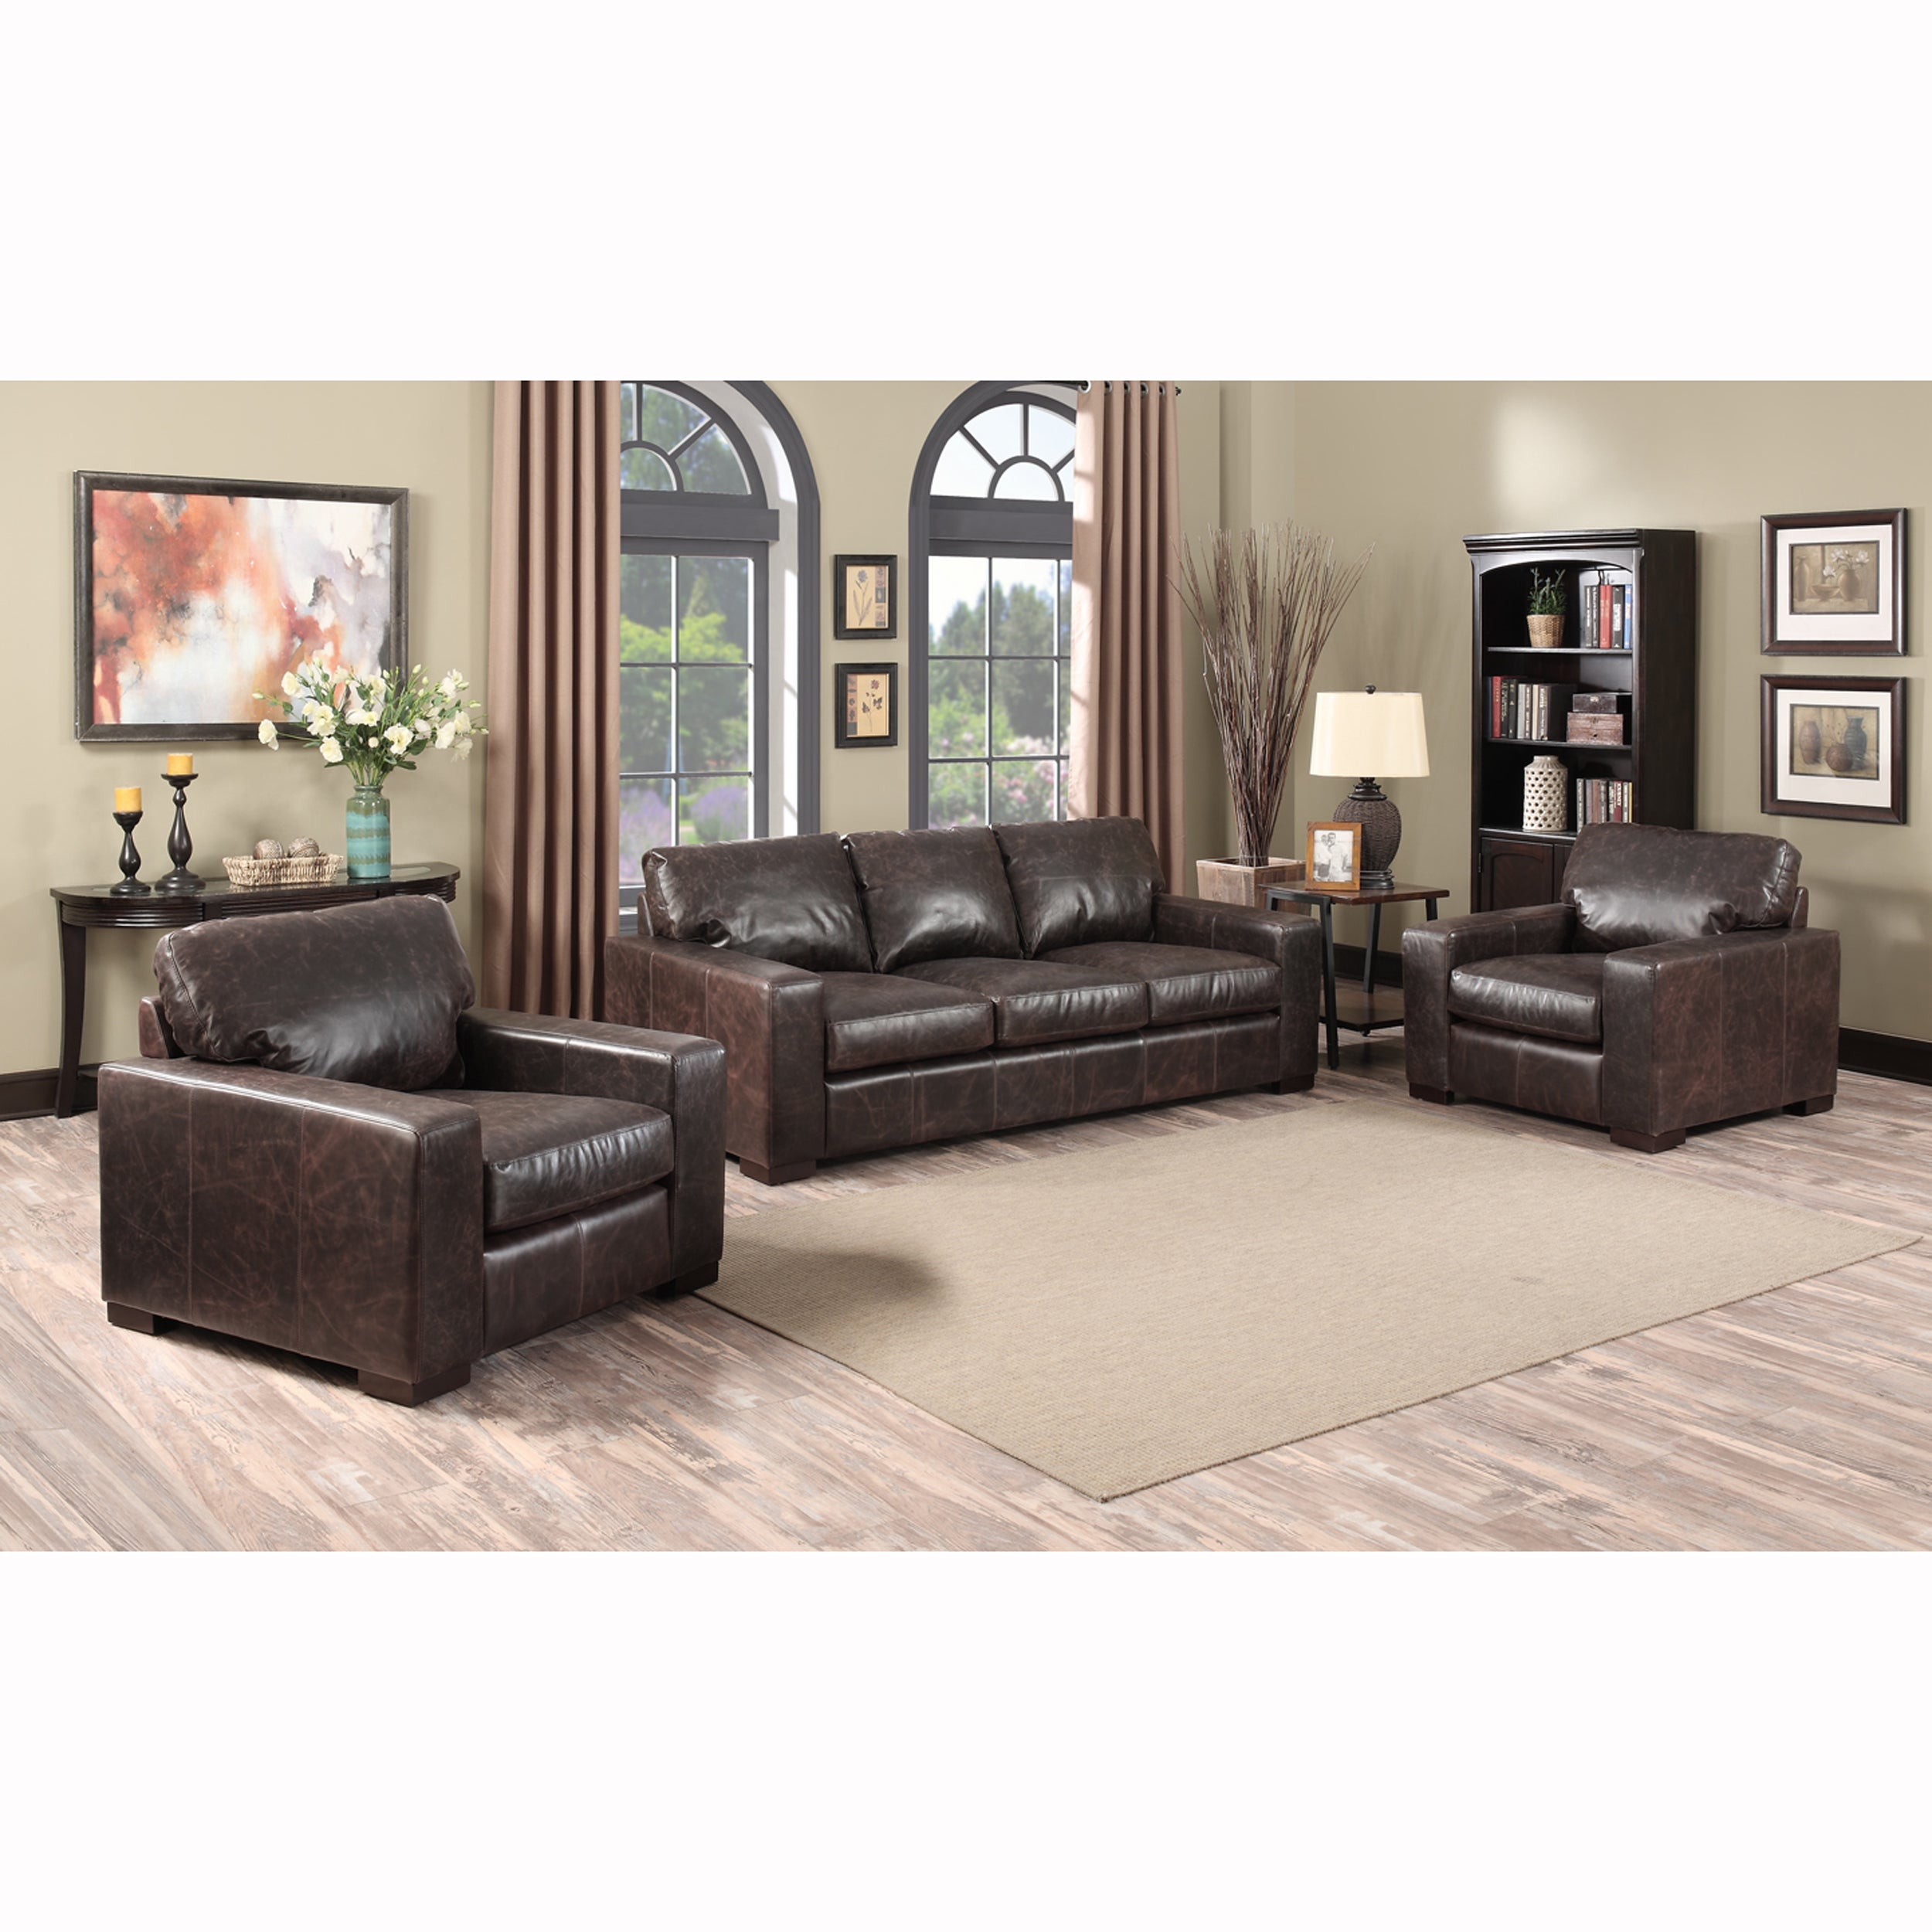 Maxweld Premium Distressed Brown Top Grain Leather Sofa And Two Chairs On Free Shipping Today 11546368